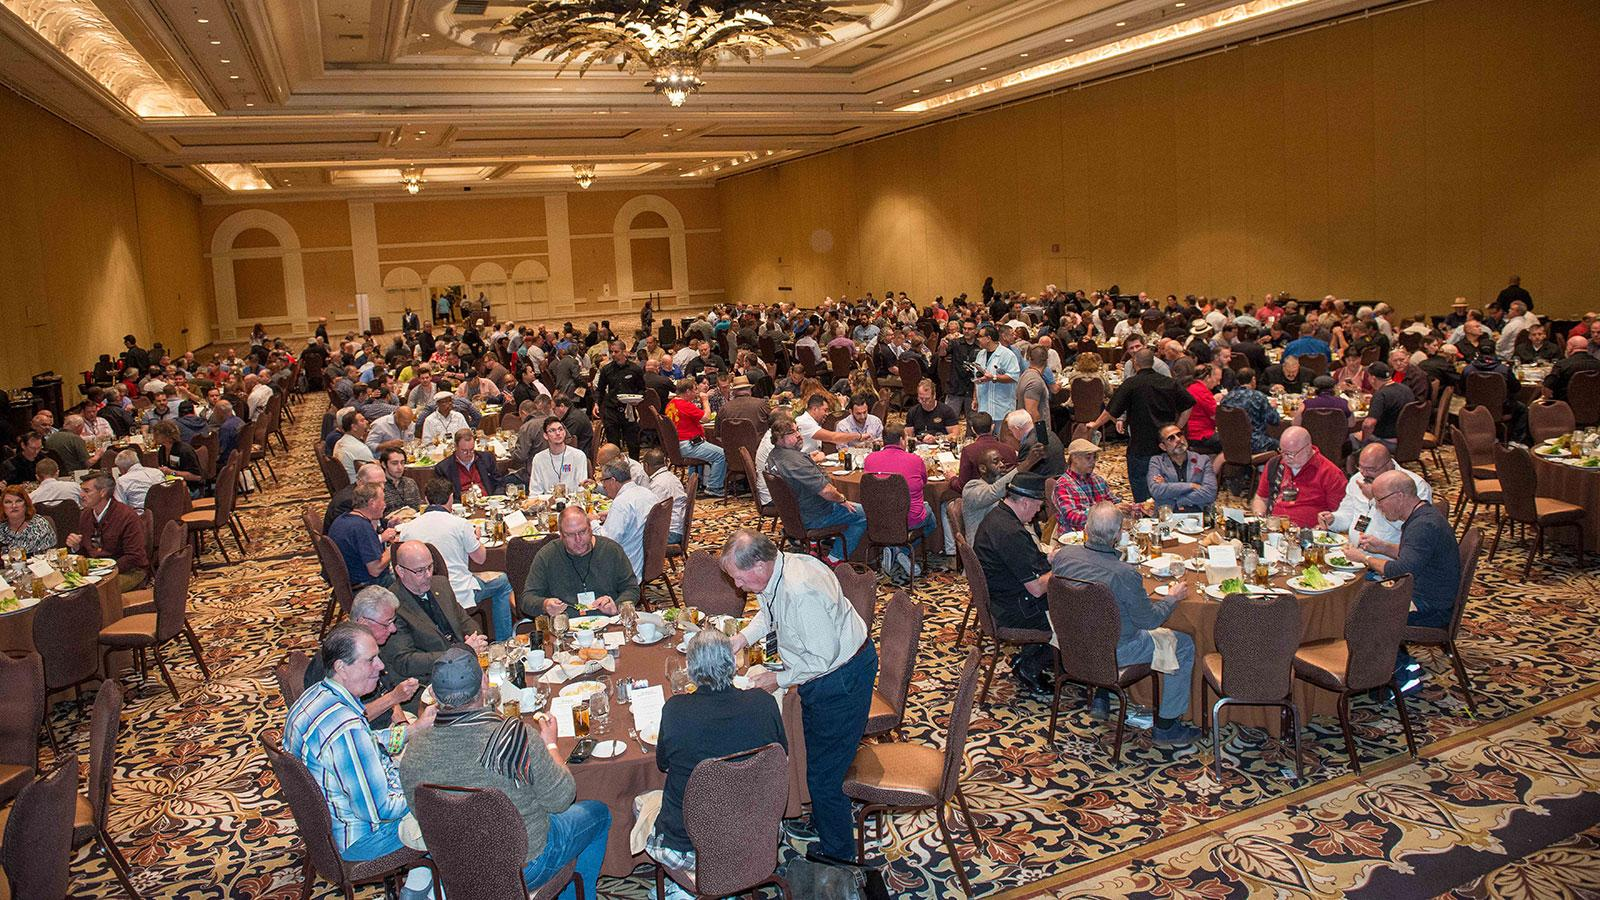 Guests dining inside the Grand Ballroom.